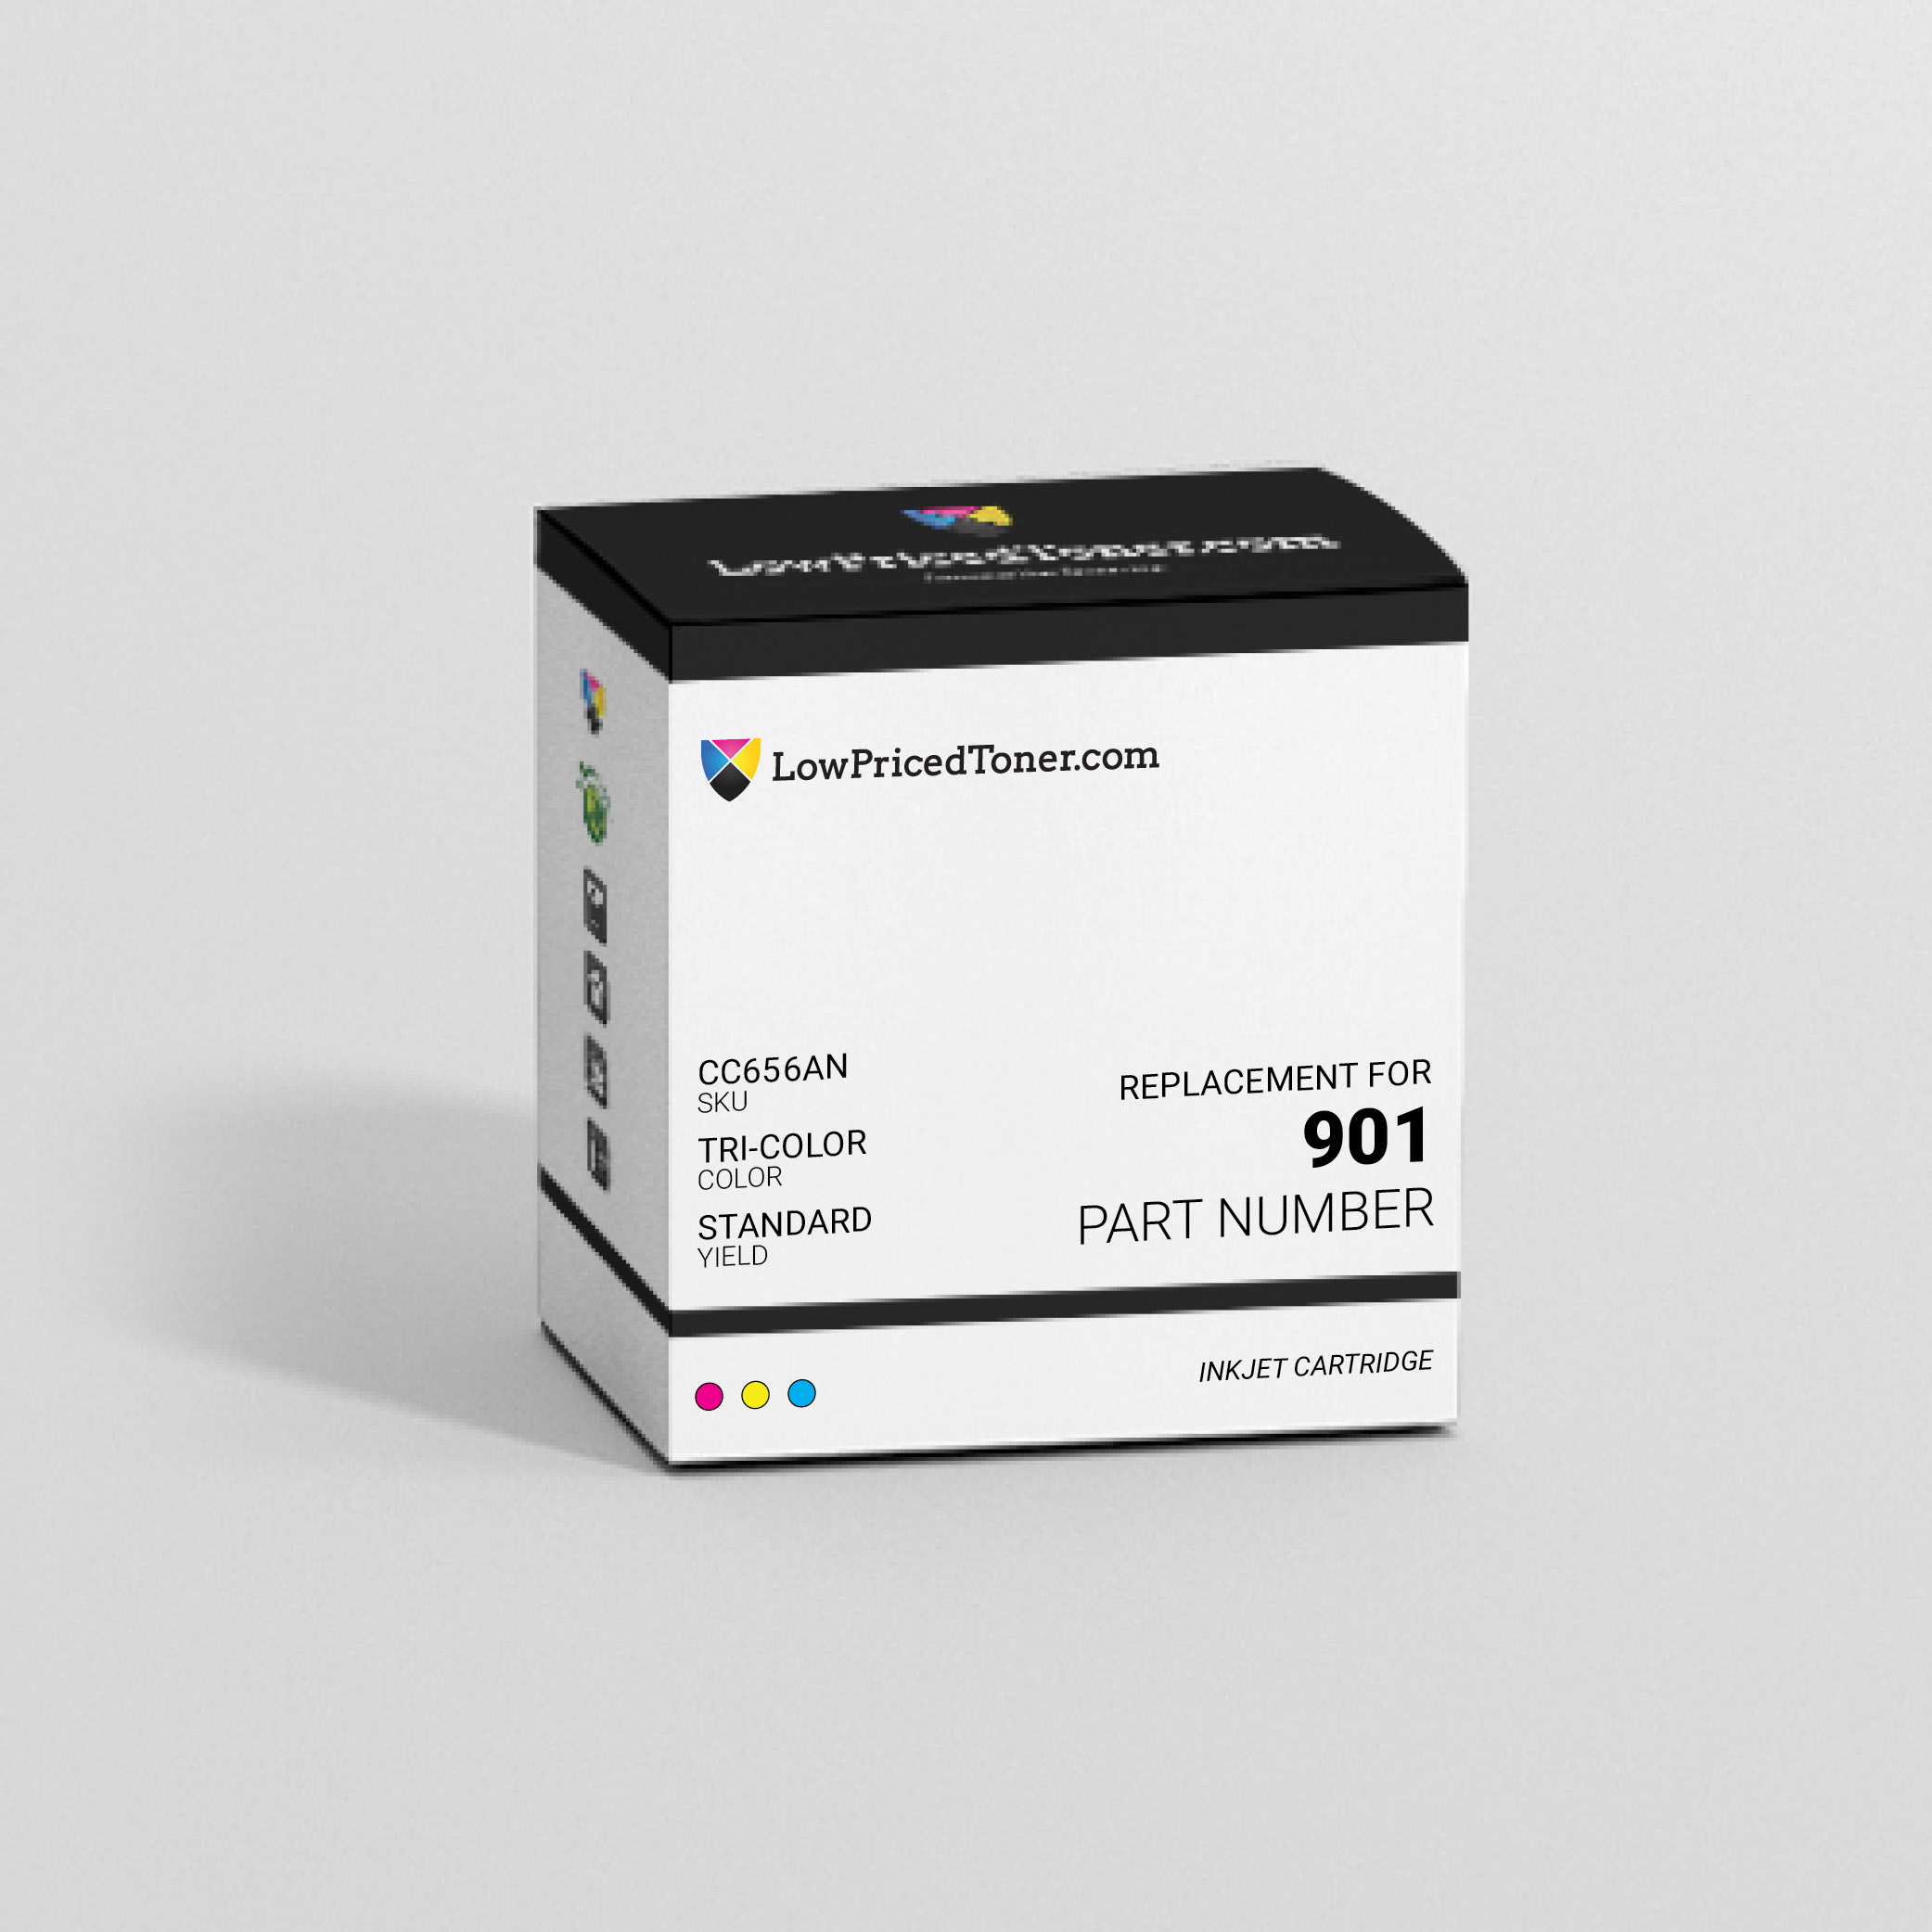 HP CC656AN 901 Remanufactured TriColor Ink Cartridge